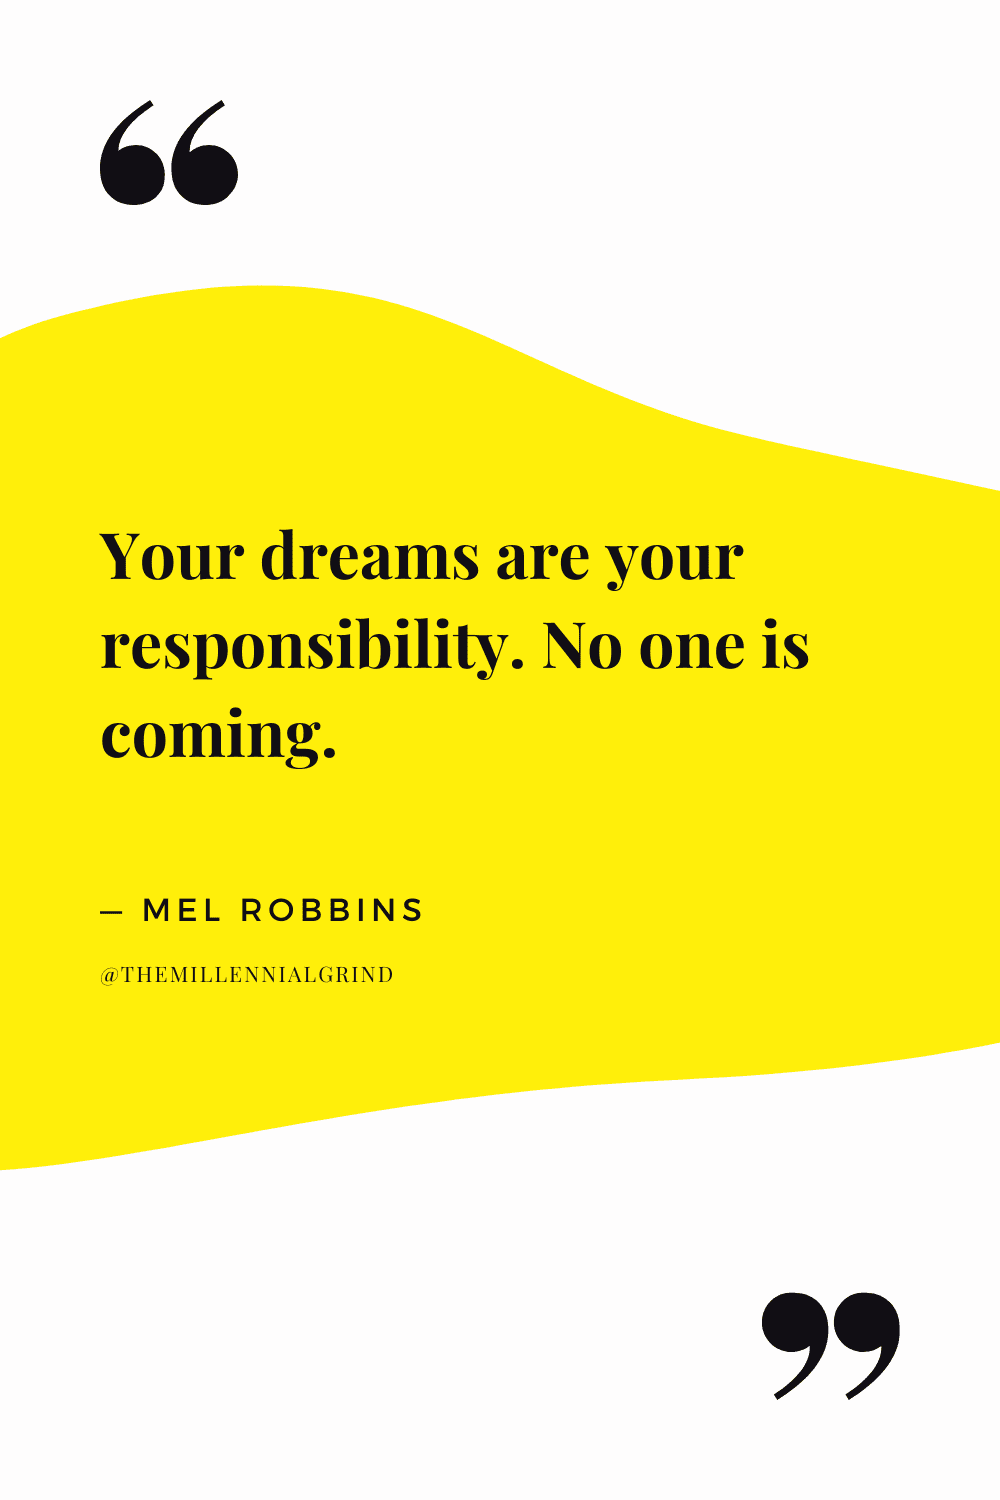 30 Quotes from The High 5 Habit by Mel Robbins